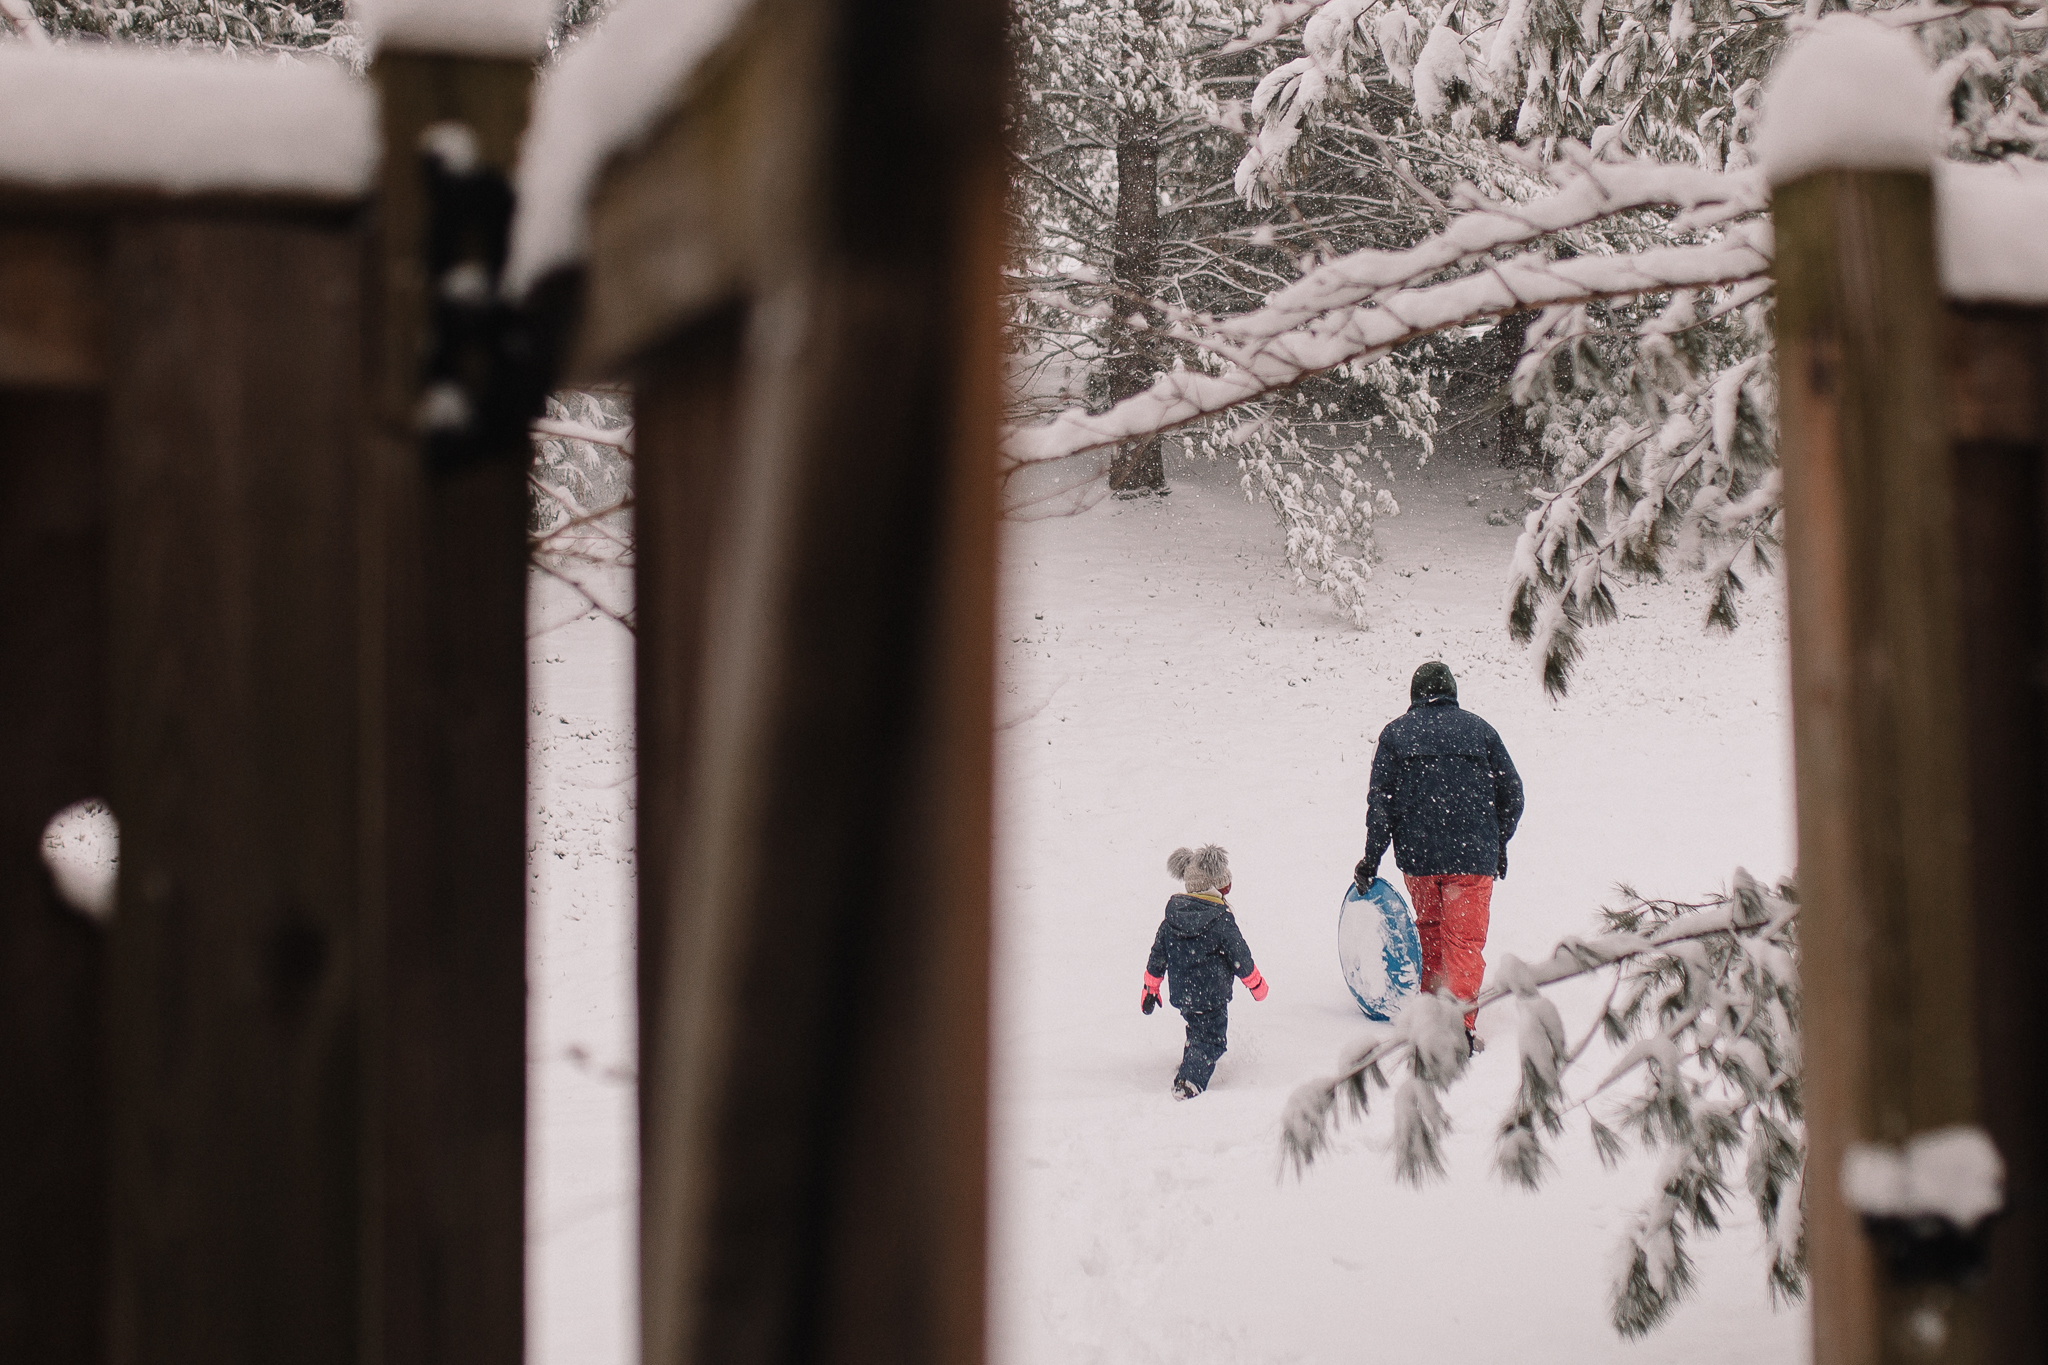 father daughter snow hill sledding winter childhood lifestyle documentary Ashburn Virginia Marti Austin Photography